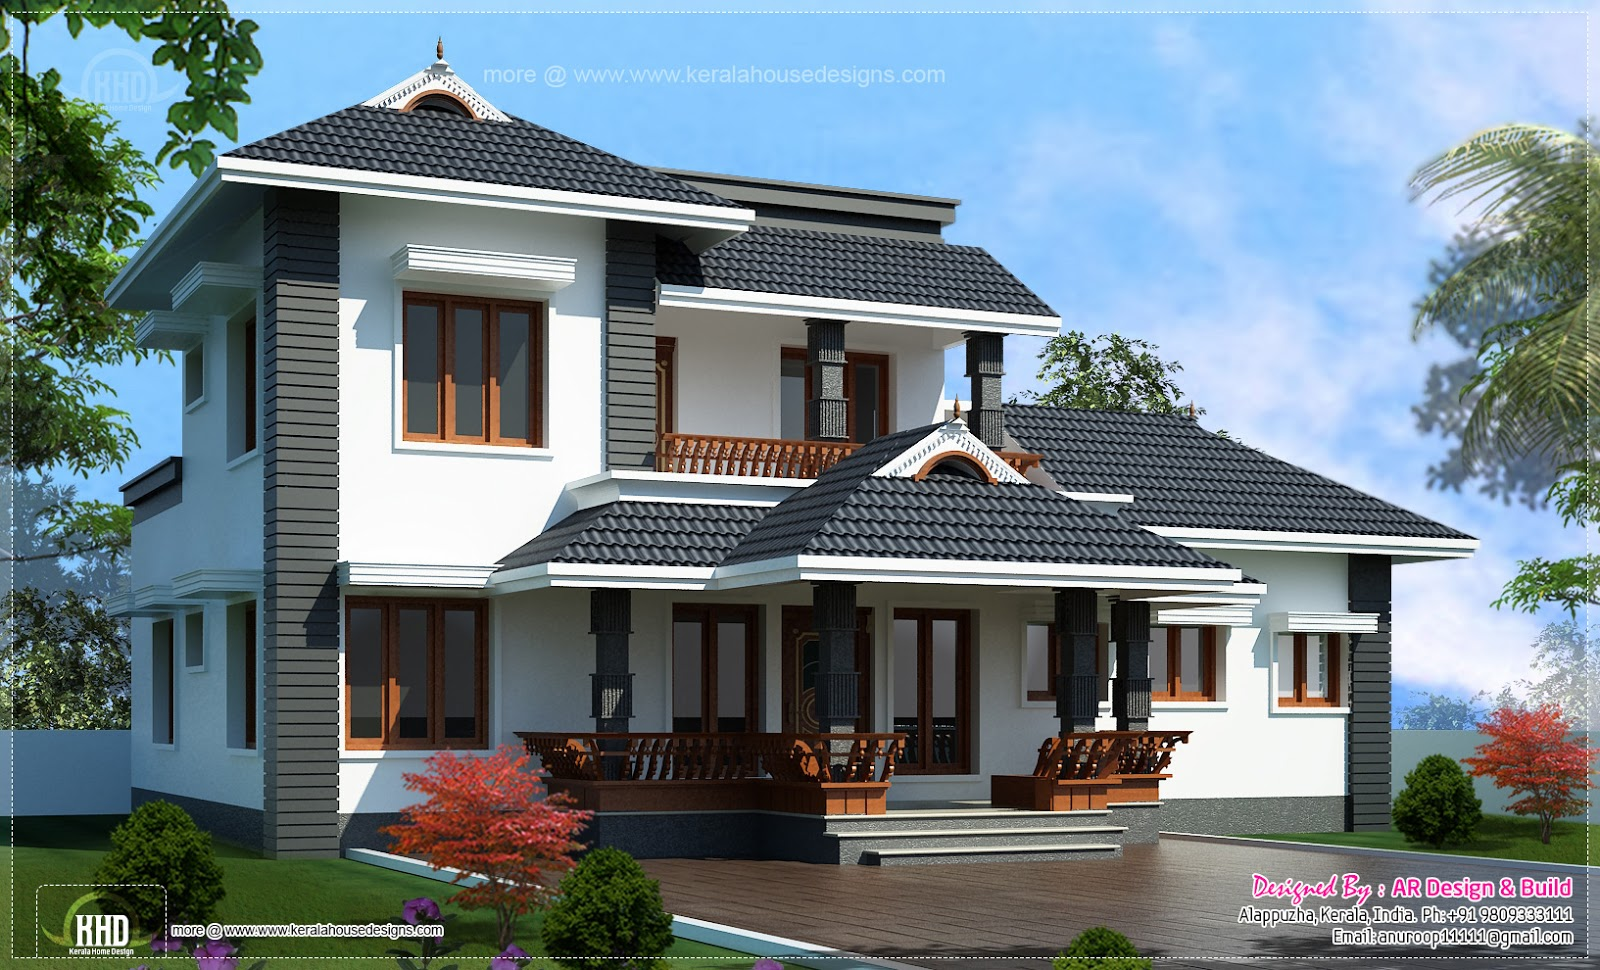 2000 4 bedroom sloping roof residence kerala home design and floor plans In home design